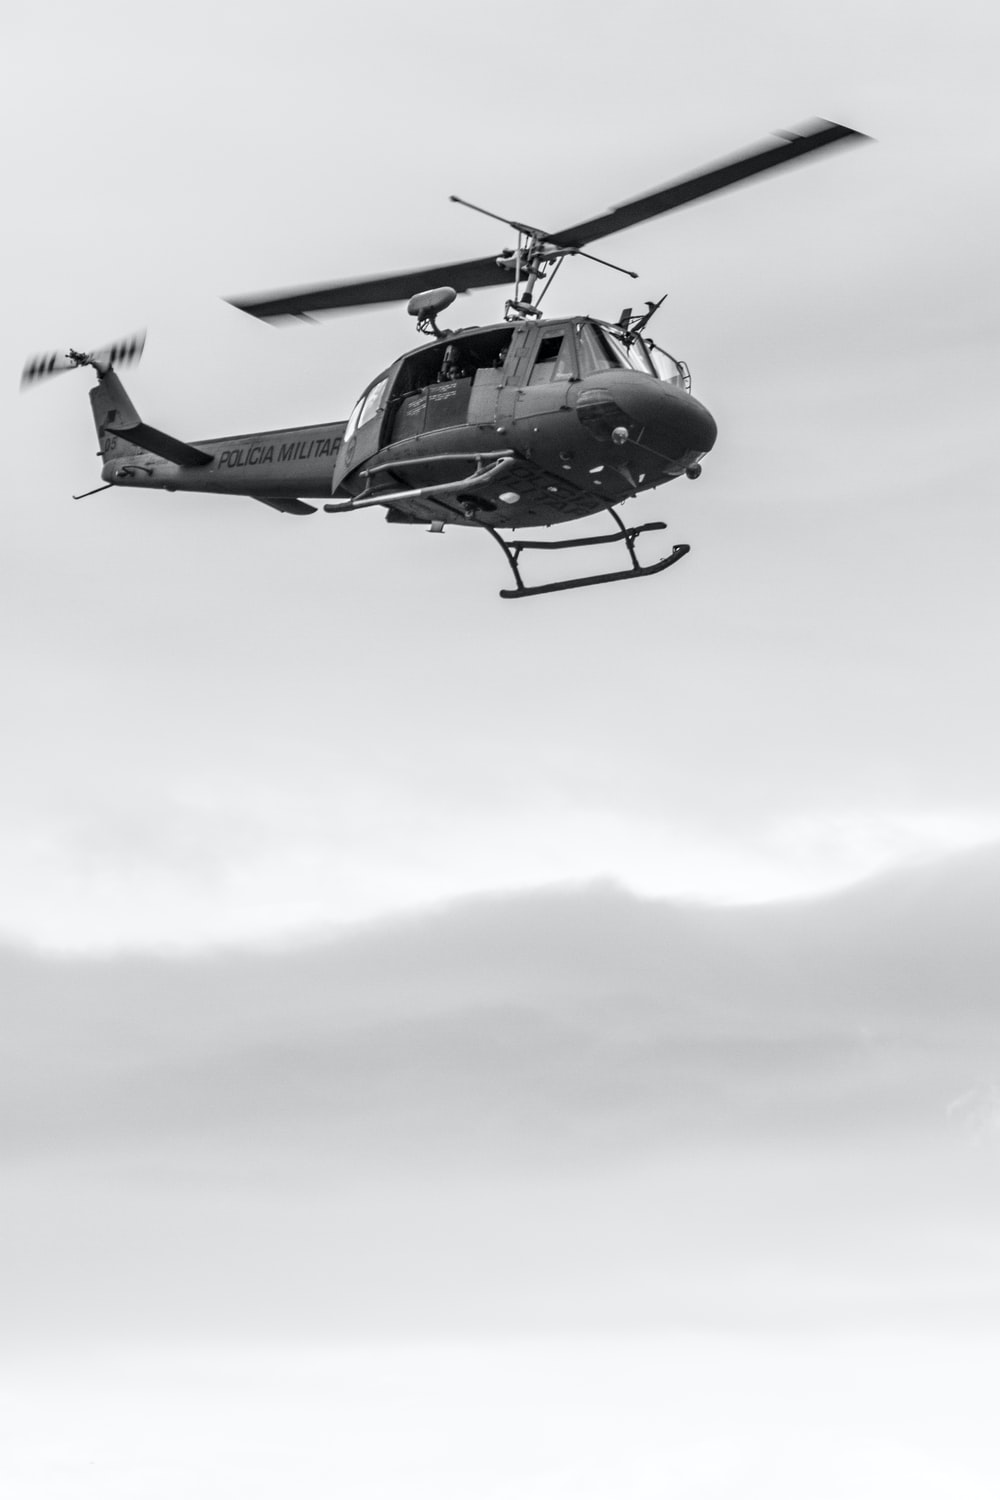 black and white helicopter flying under white clouds during daytime